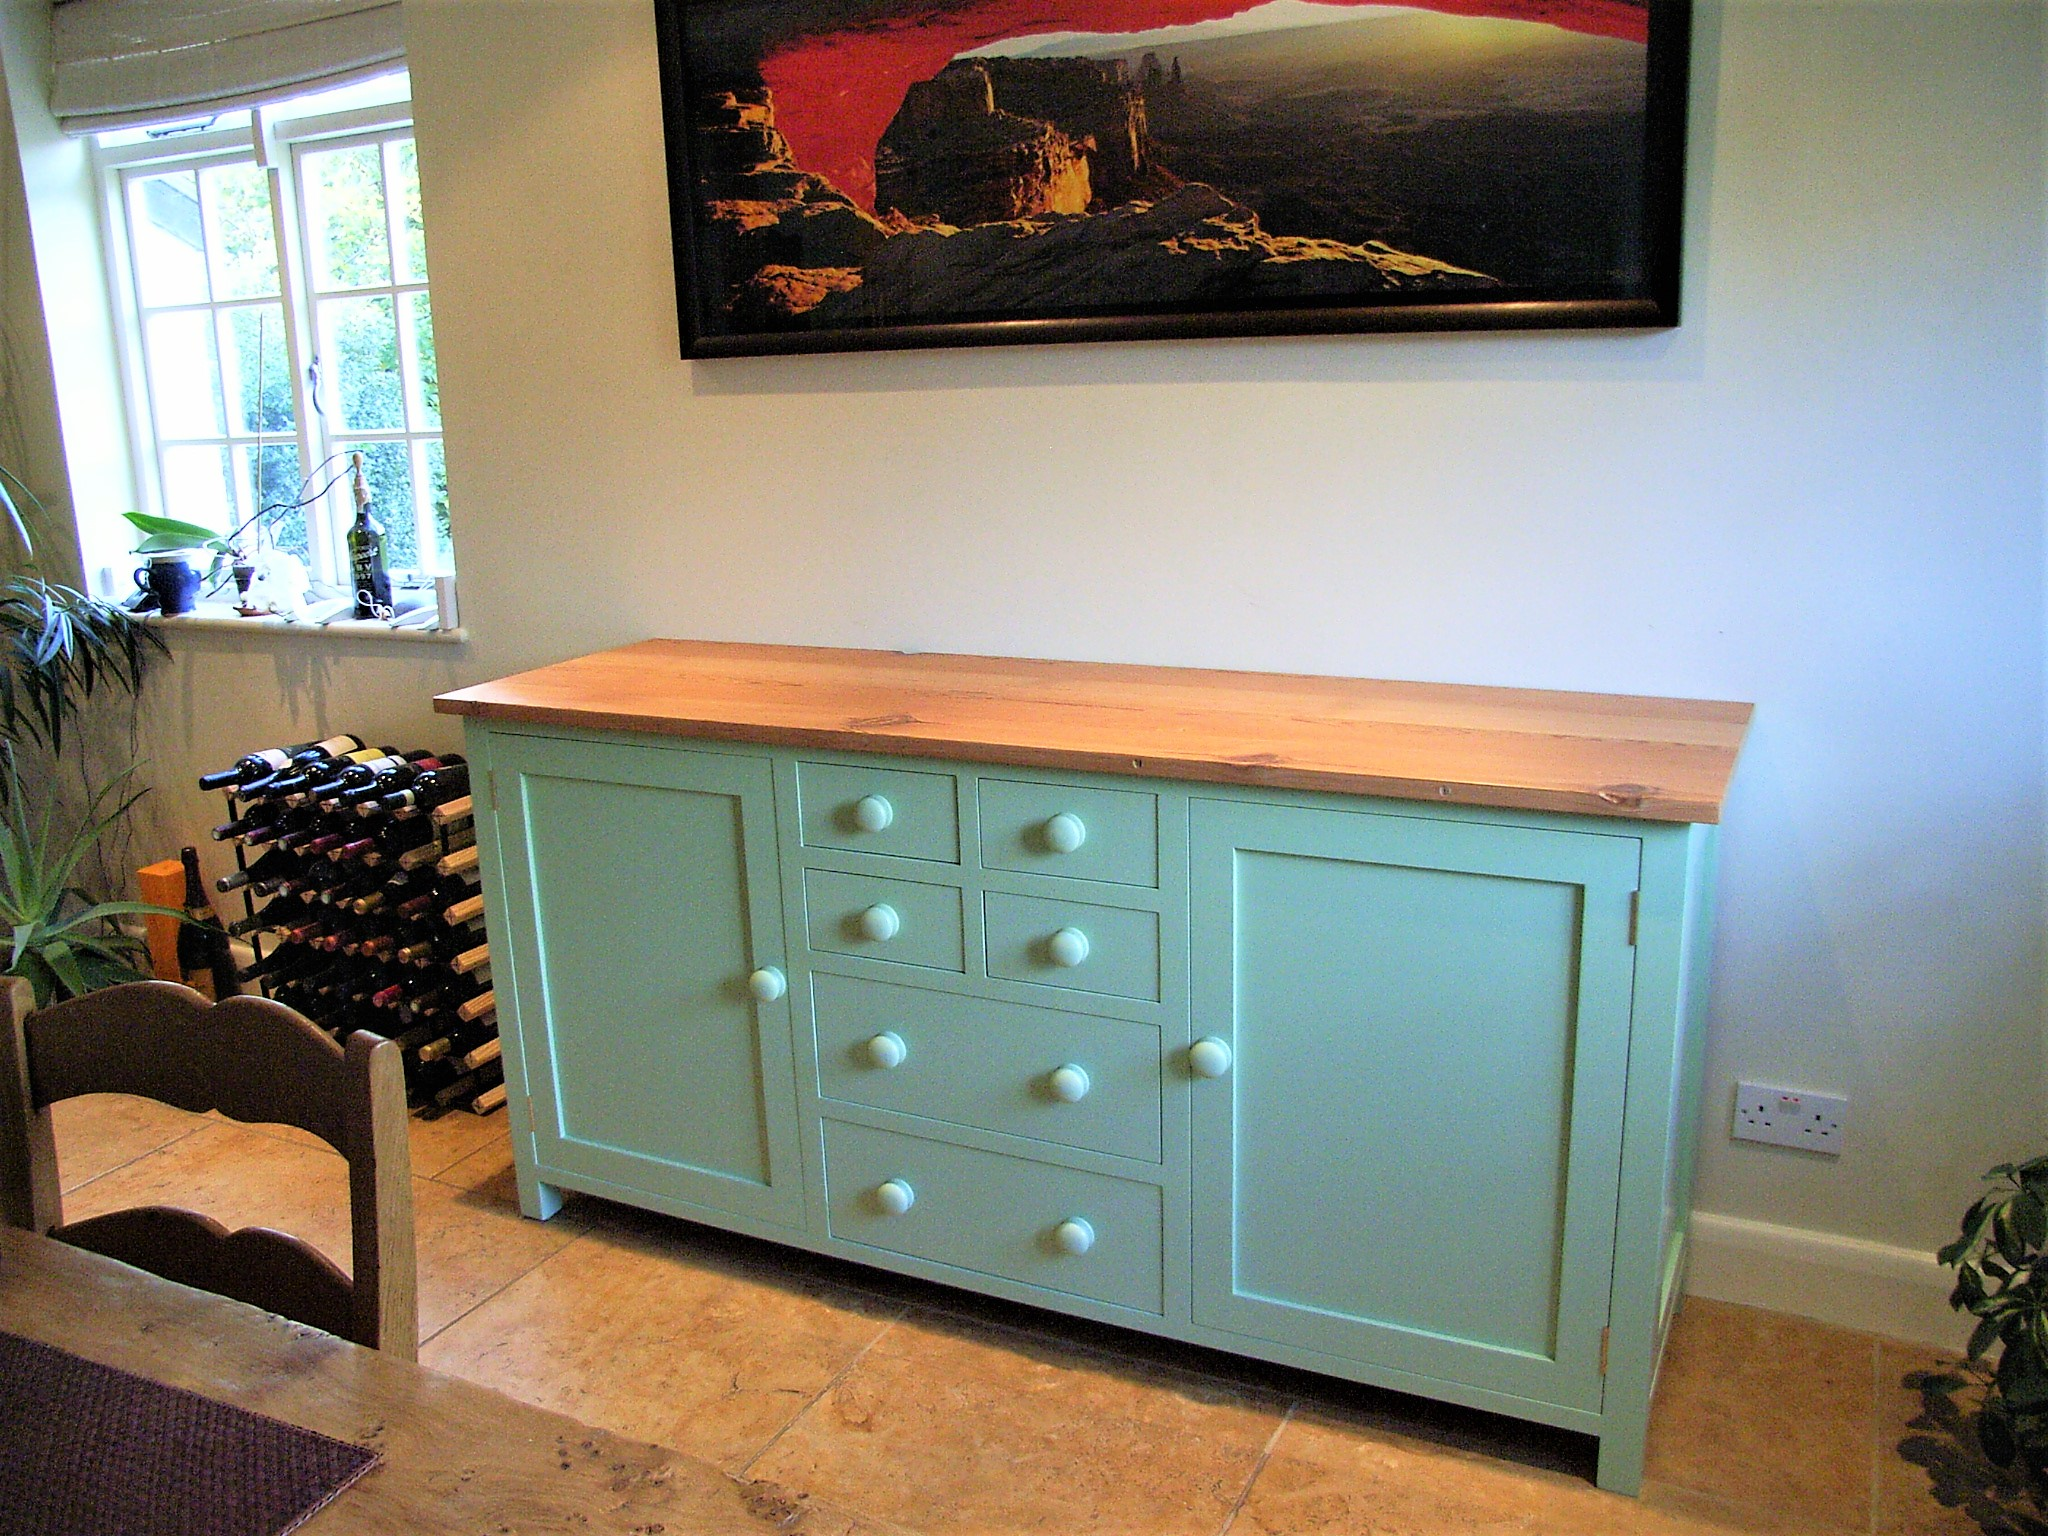 bespoke freestanding furniture from Experienced Carpenter St Albans